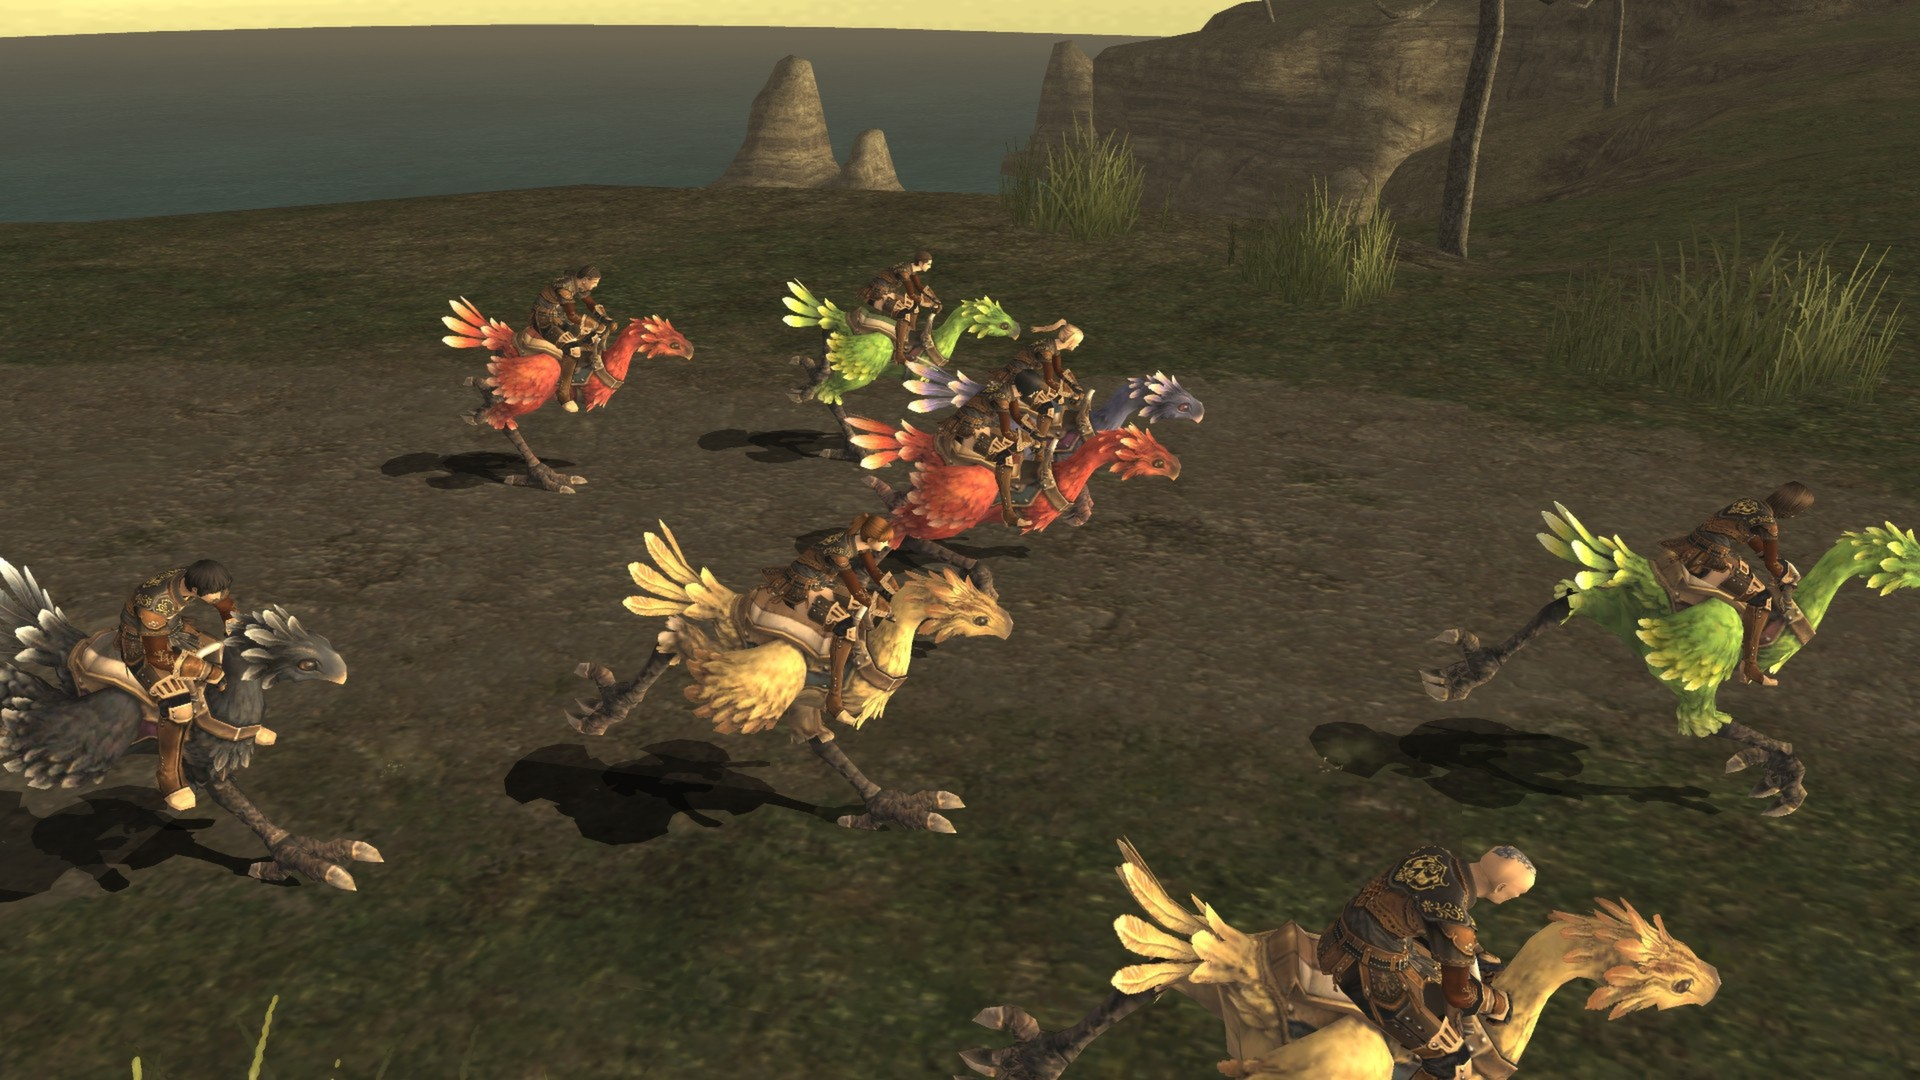 Final fantasy xi: the play online viewer – retro sensei.